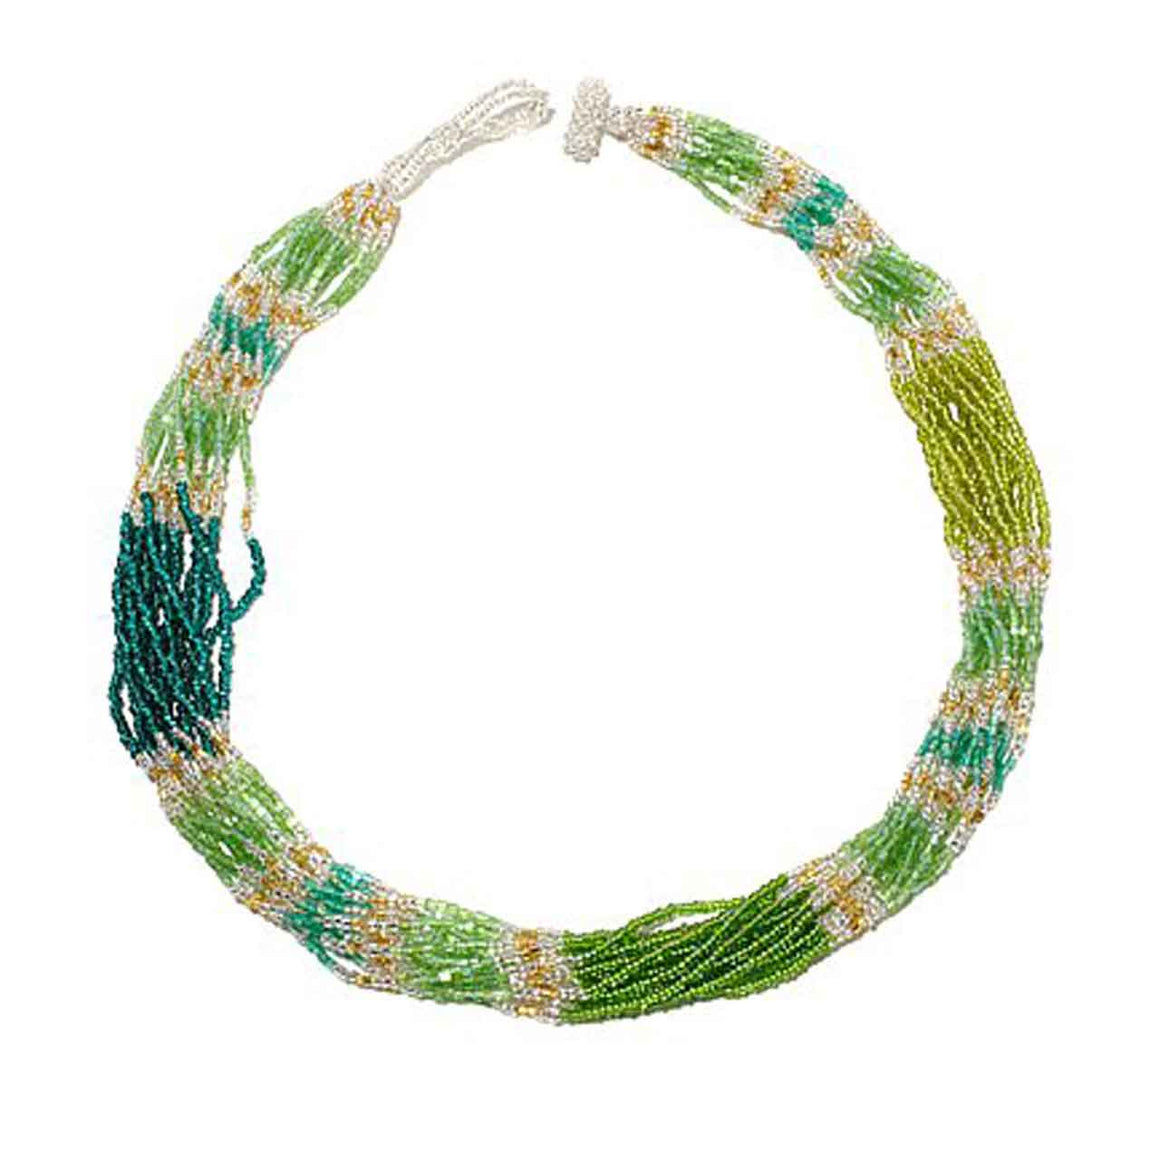 Green 15 Strand Colour Blocked Potay Necklace